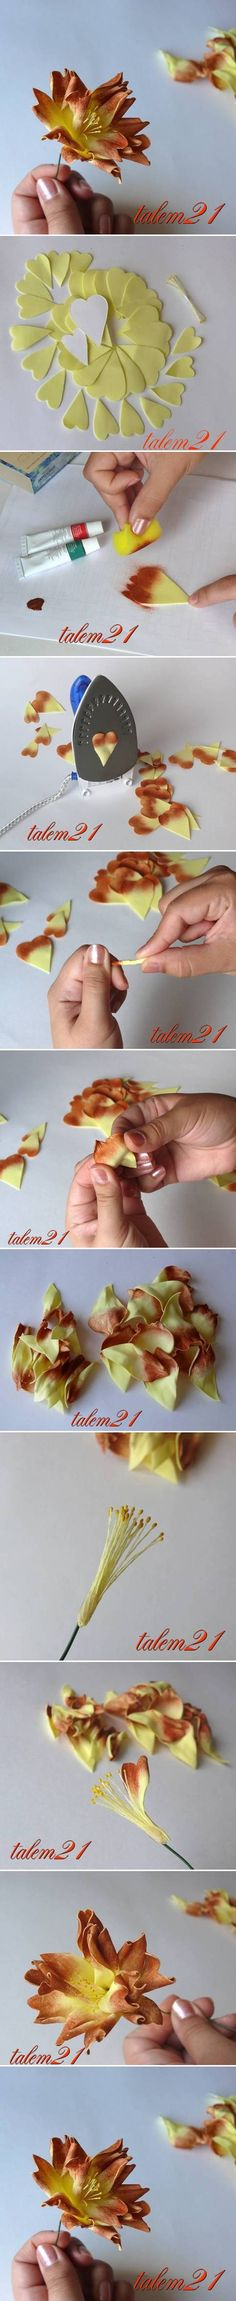 Fabric? DIY Fantasy Flower  http://www.usefuldiy.com/es/diy-fantasy-flower/